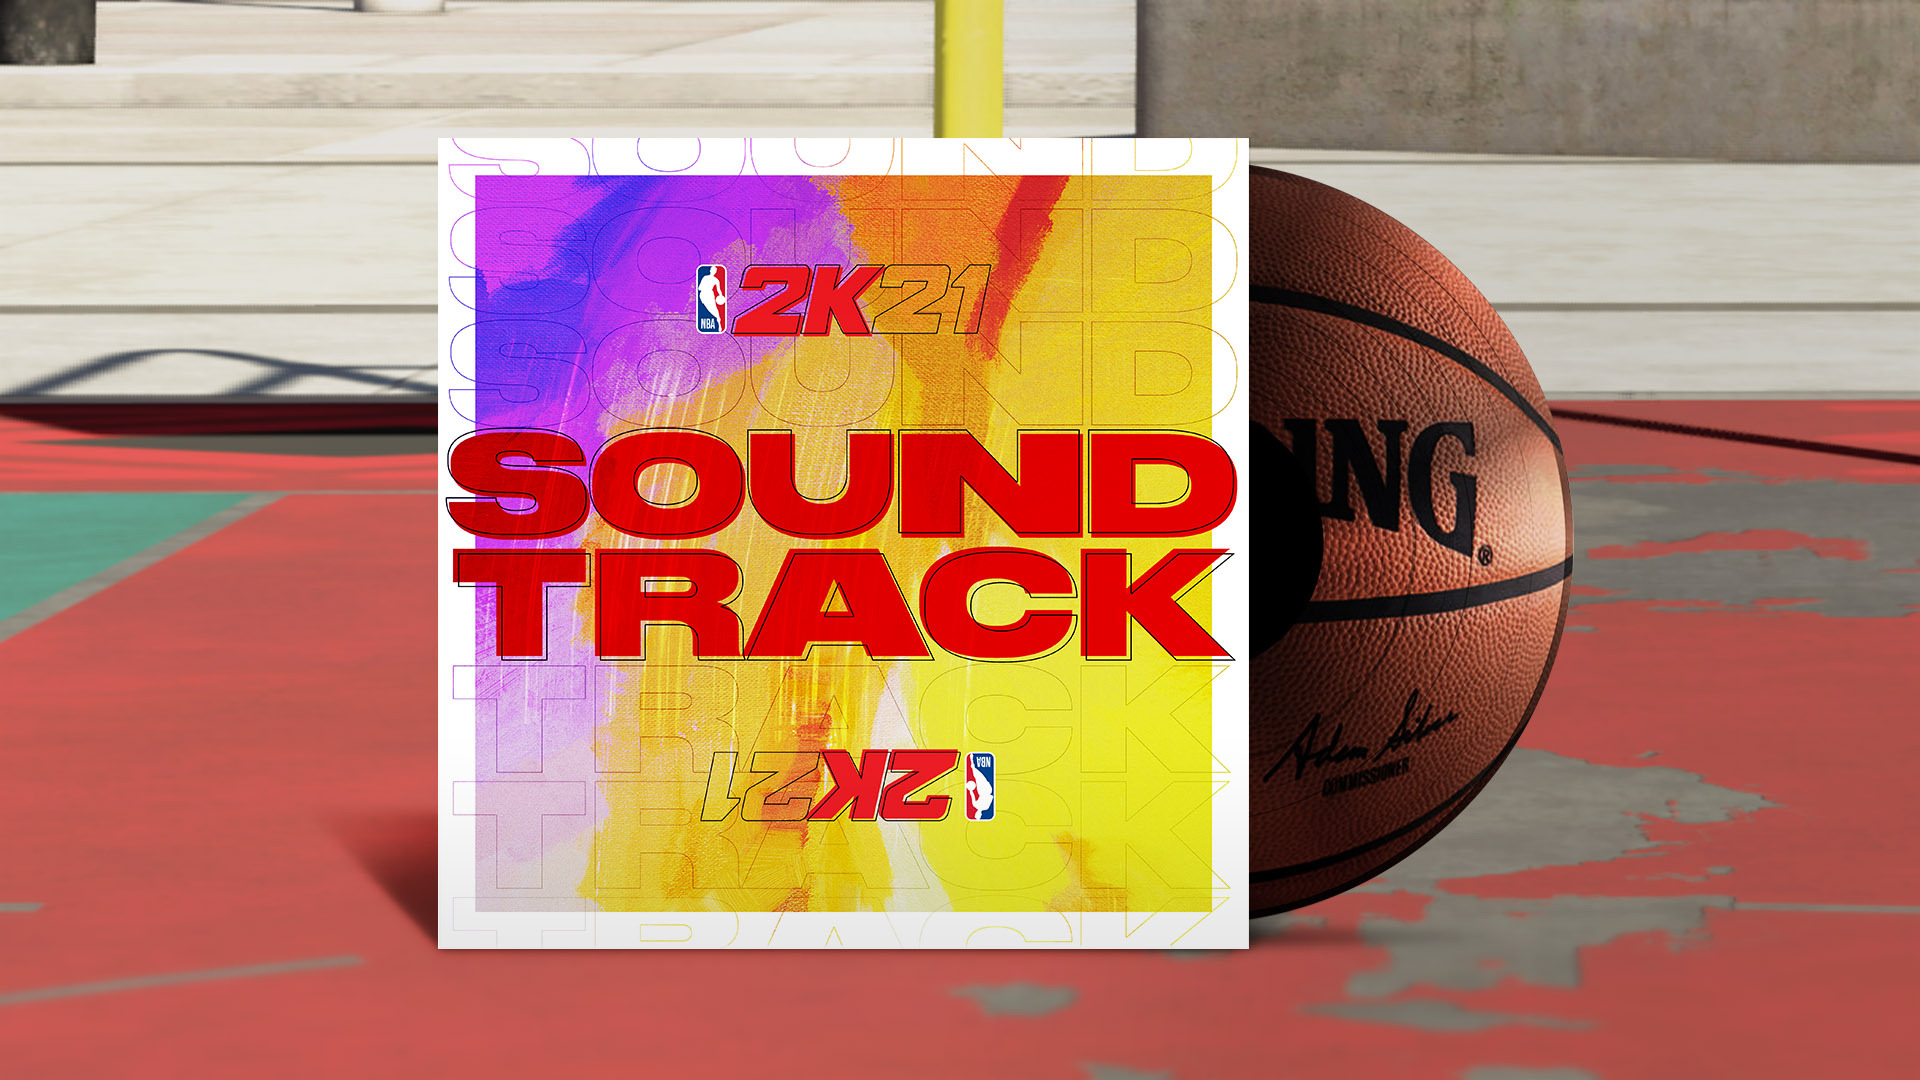 Nba 2k21 Sets The Gold Standard For Music With Its Definitive In Game Soundtrack Developed In Partnership With Unitedmasters Business Wire